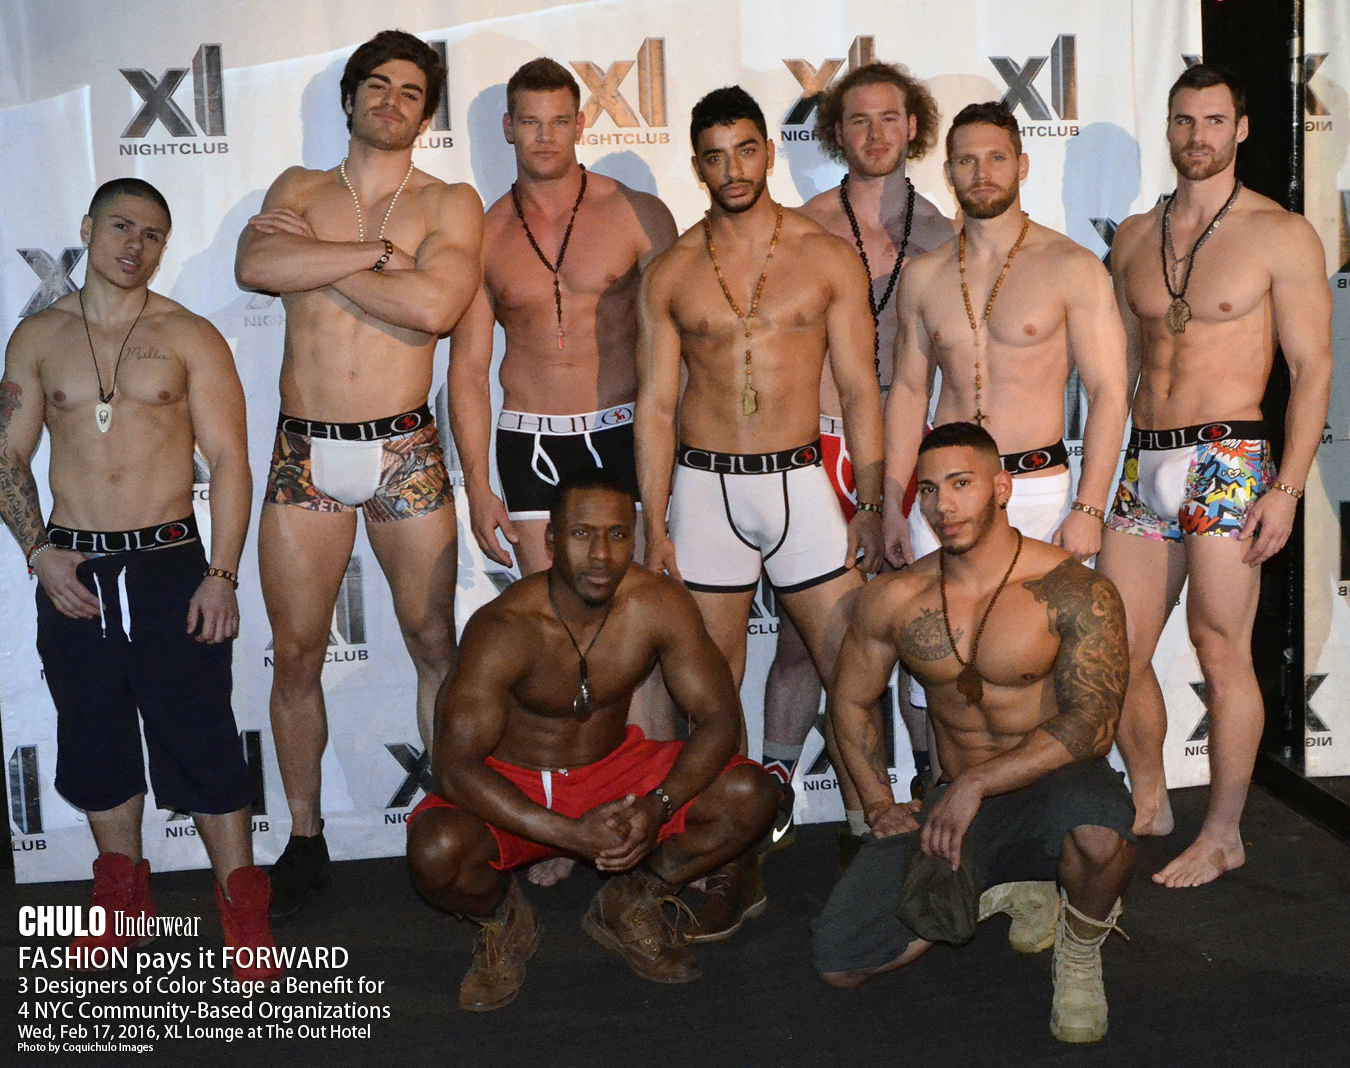 XL Lounge CHULO Underwear Charity Fashion Show 001